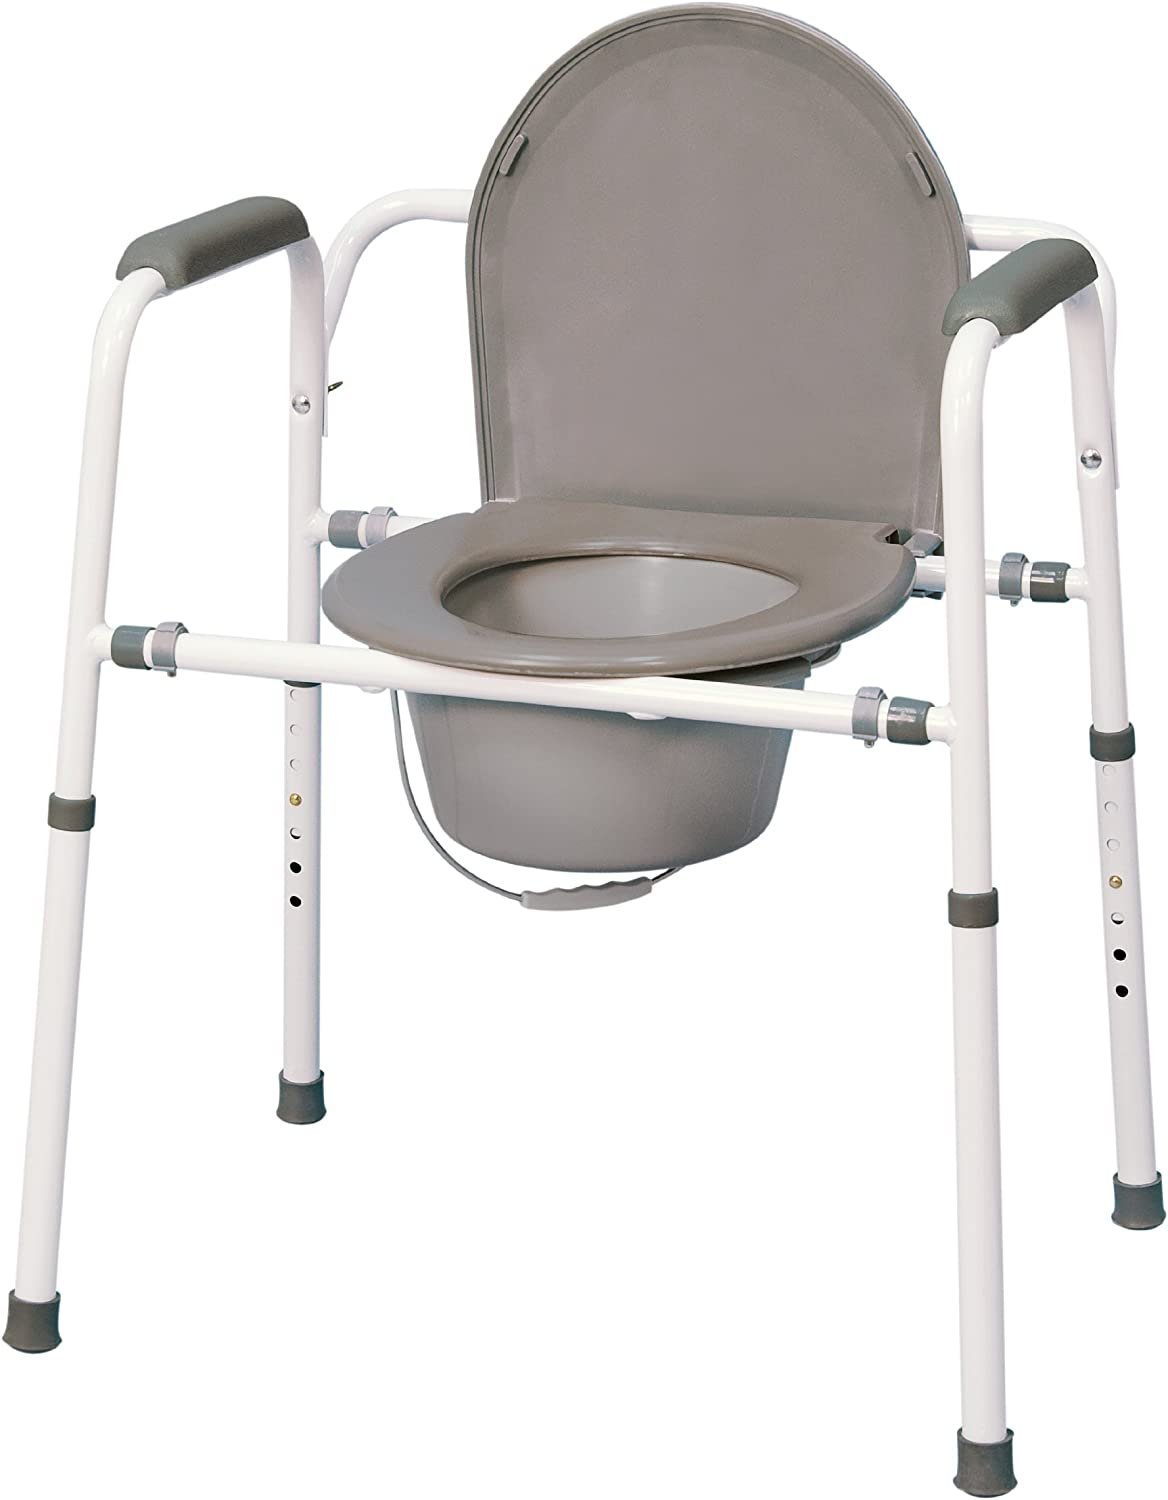 MedPro Homecare Commode Chair with Adjustable Height